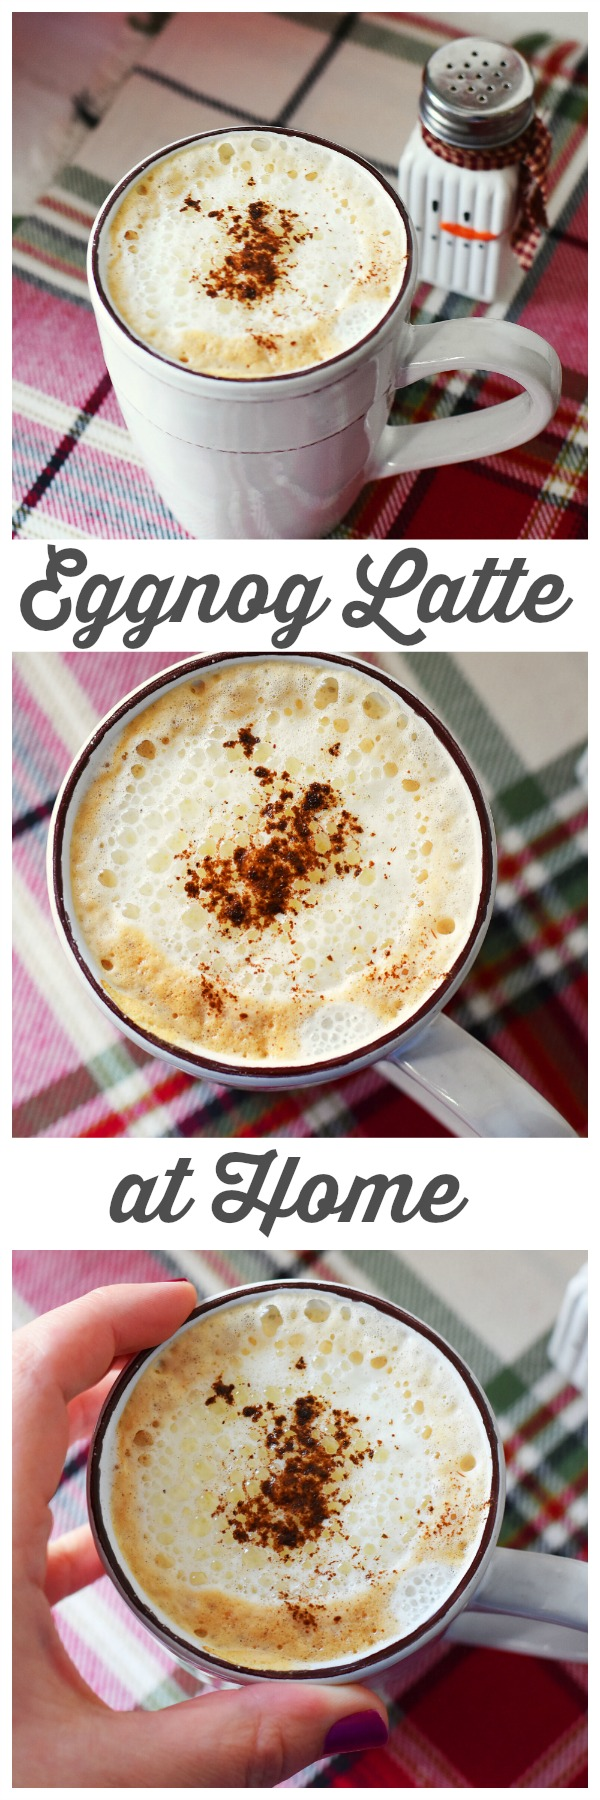 Eggnog-Latte-at-Home